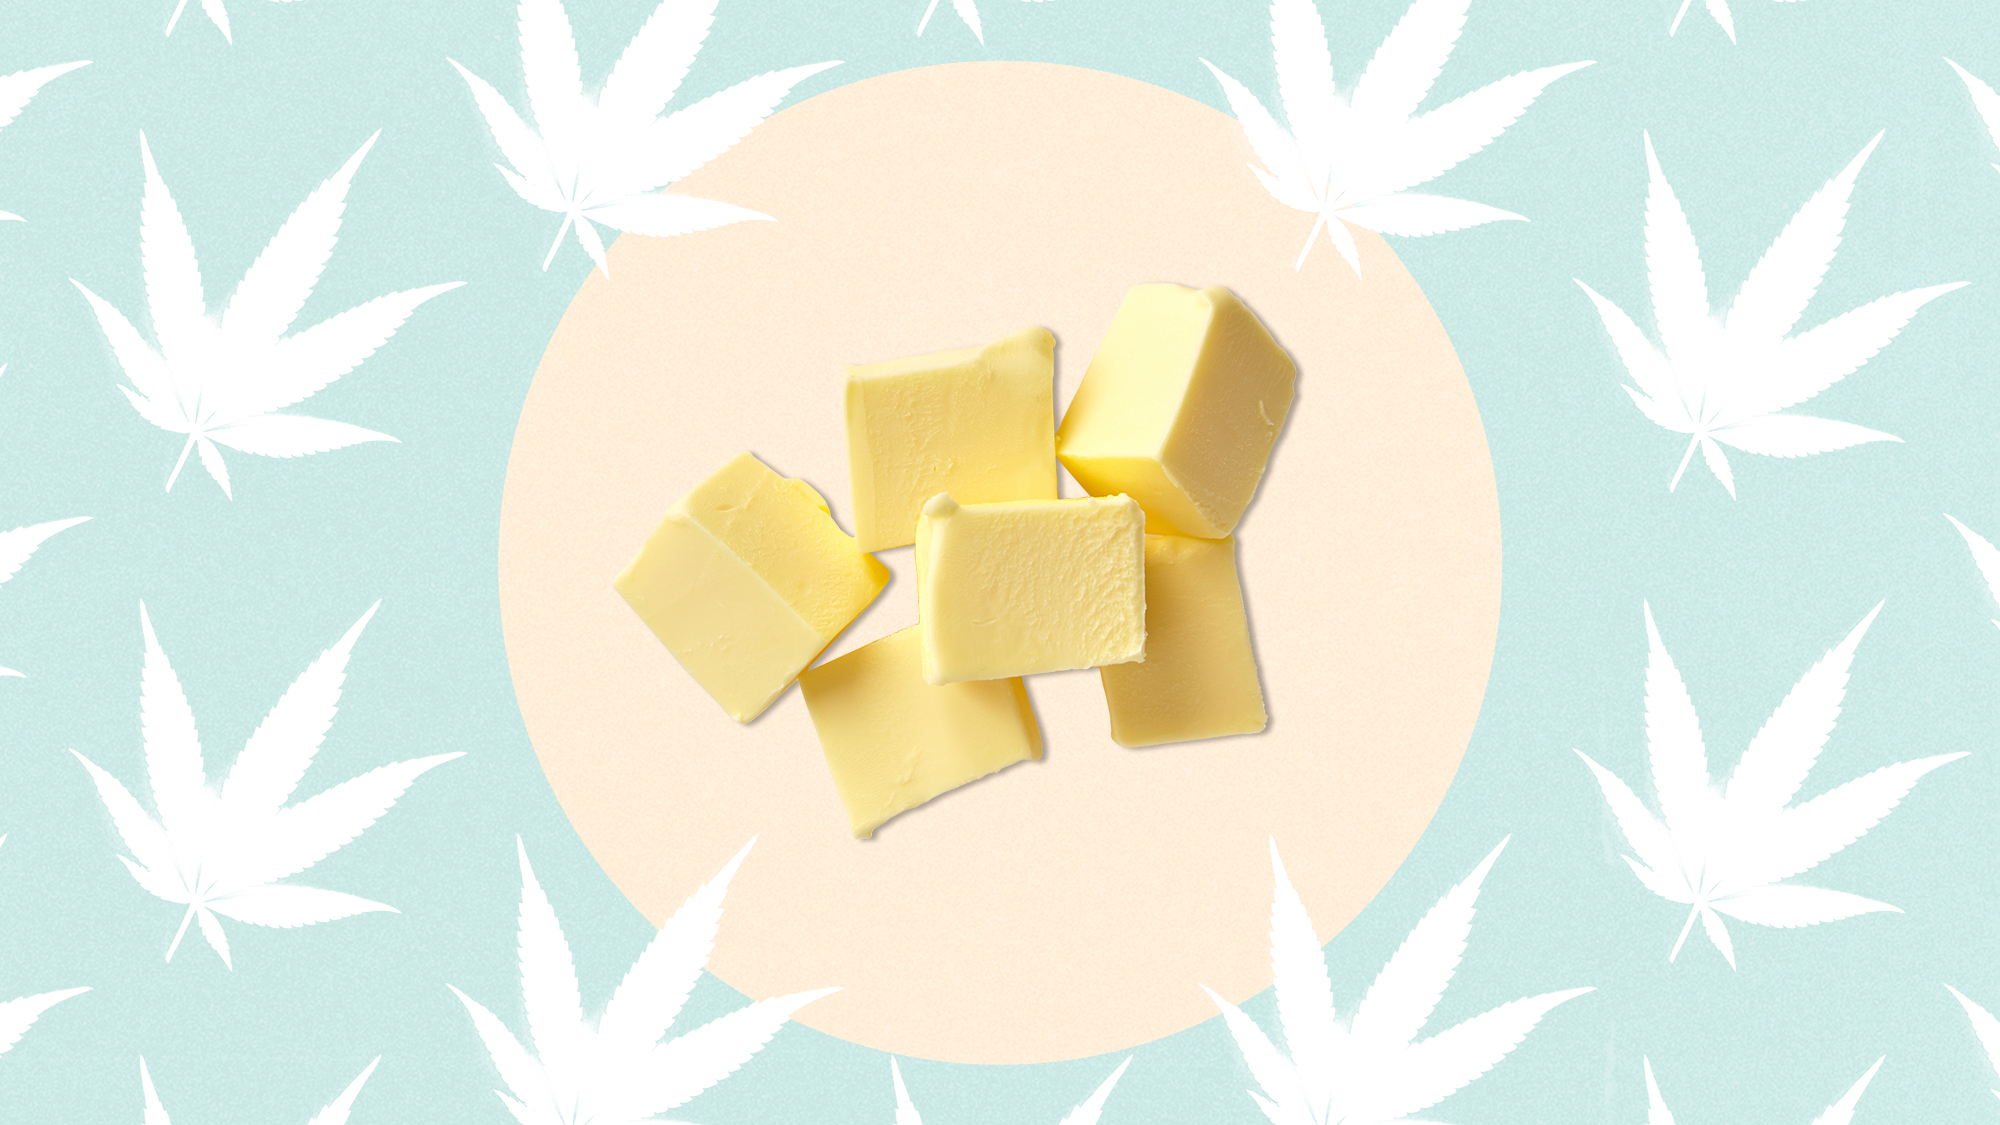 Slices of butter on a designed background of cannabis leaves